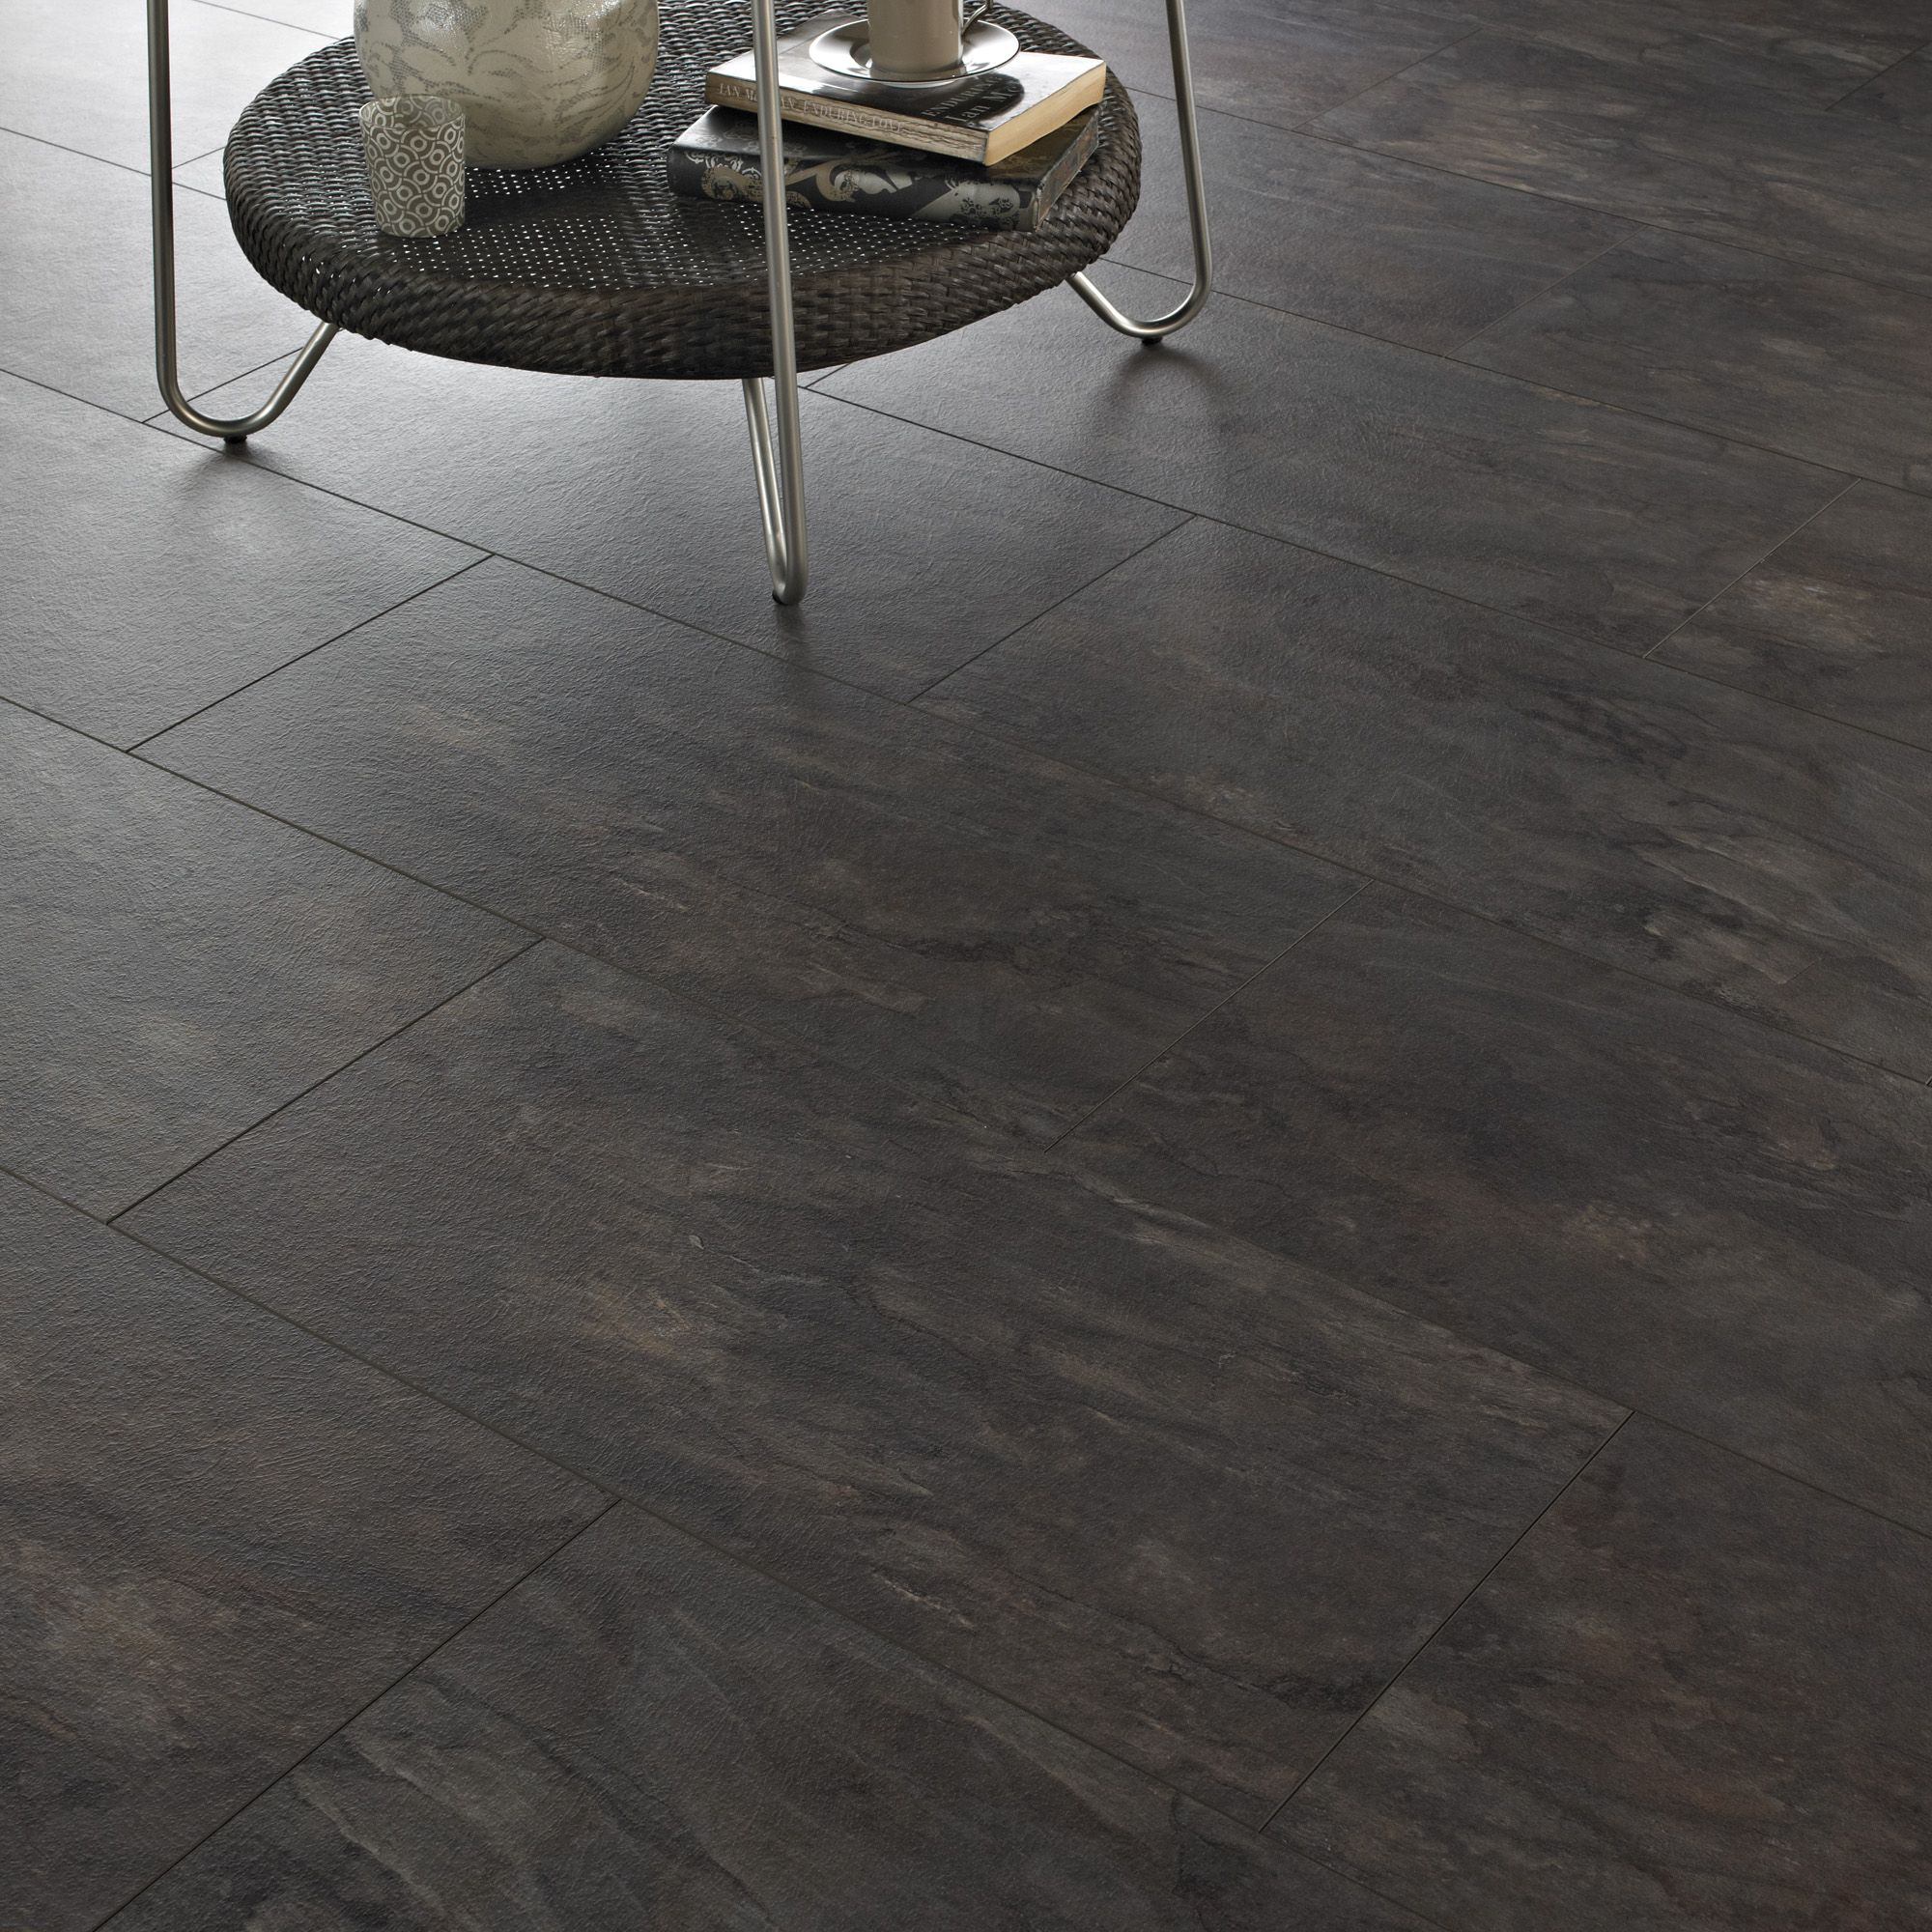 Intermezzo Grey Slate Effect Laminate Flooring 2 05 M² Pack Departments Diy At B Q